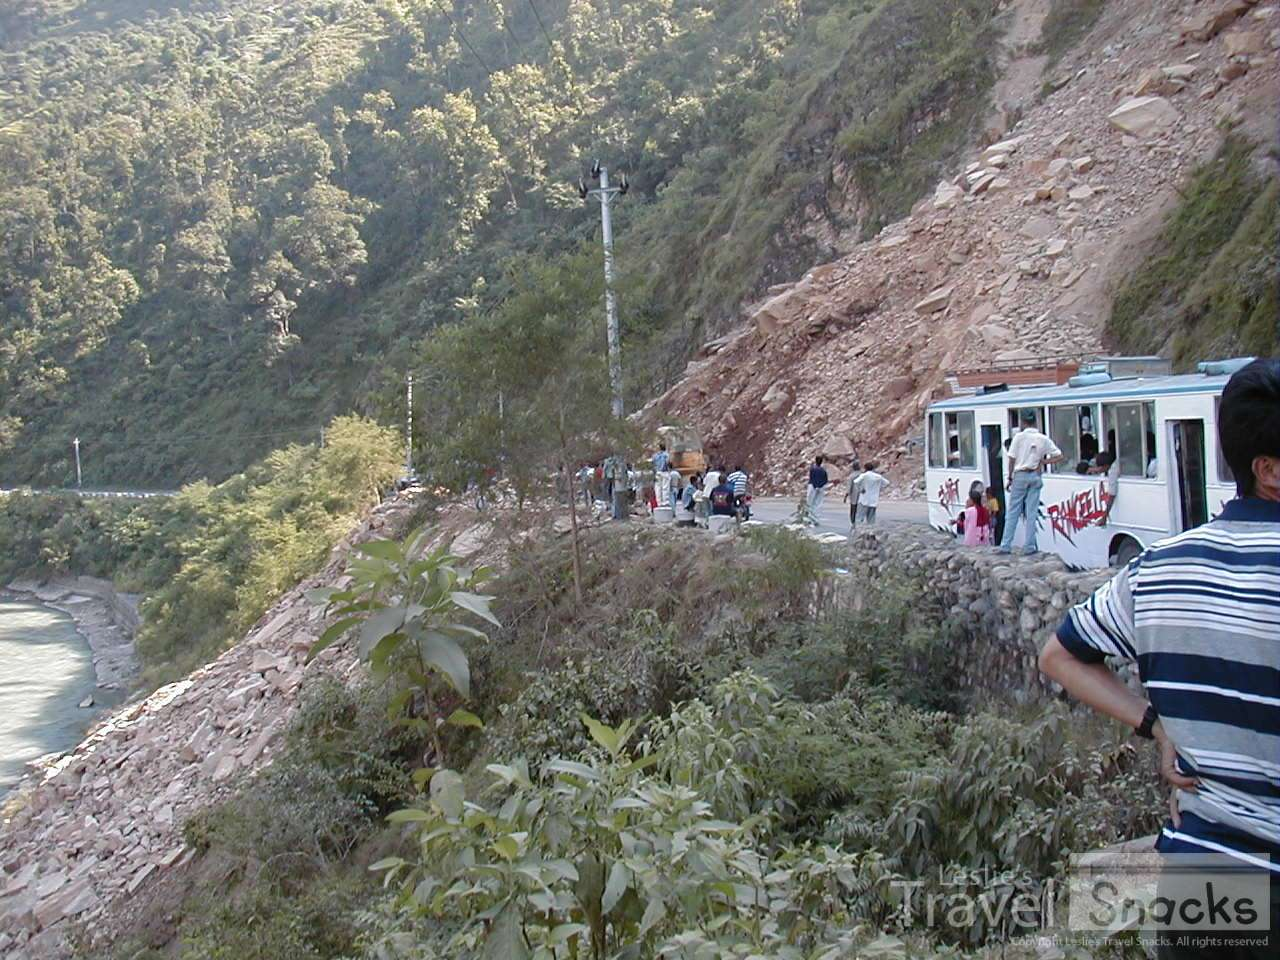 This landslide help up my bus for many hours when I was heading back to Kathmandu to meet back up with the guys.